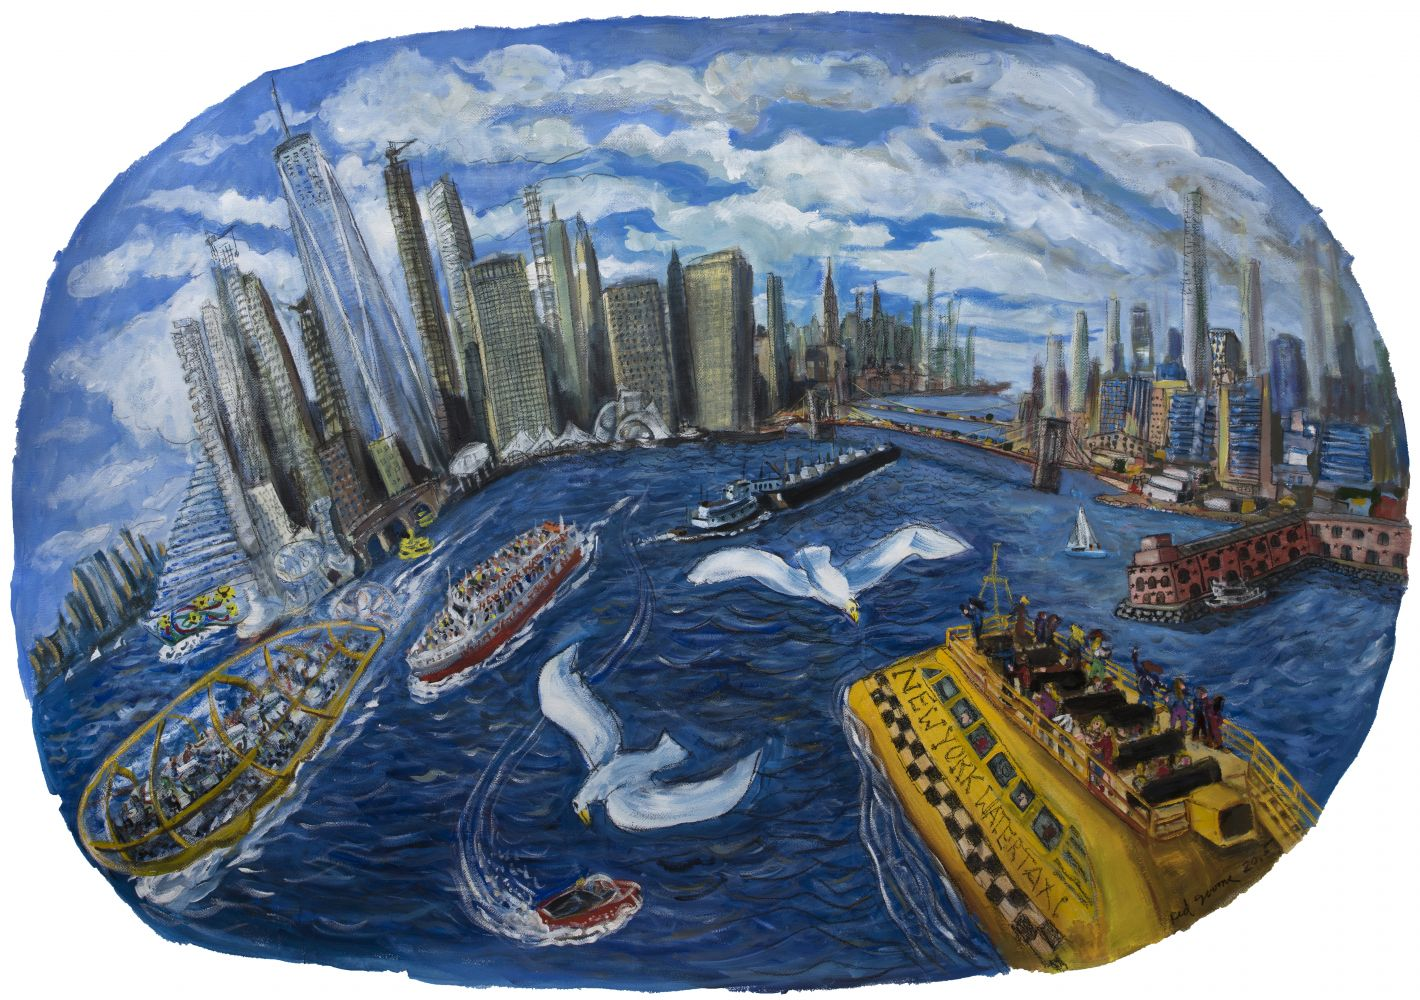 Watercolor and pastel on paper study by Red Grooms of the New York Harbor with people on yellow boats and seagulls flying